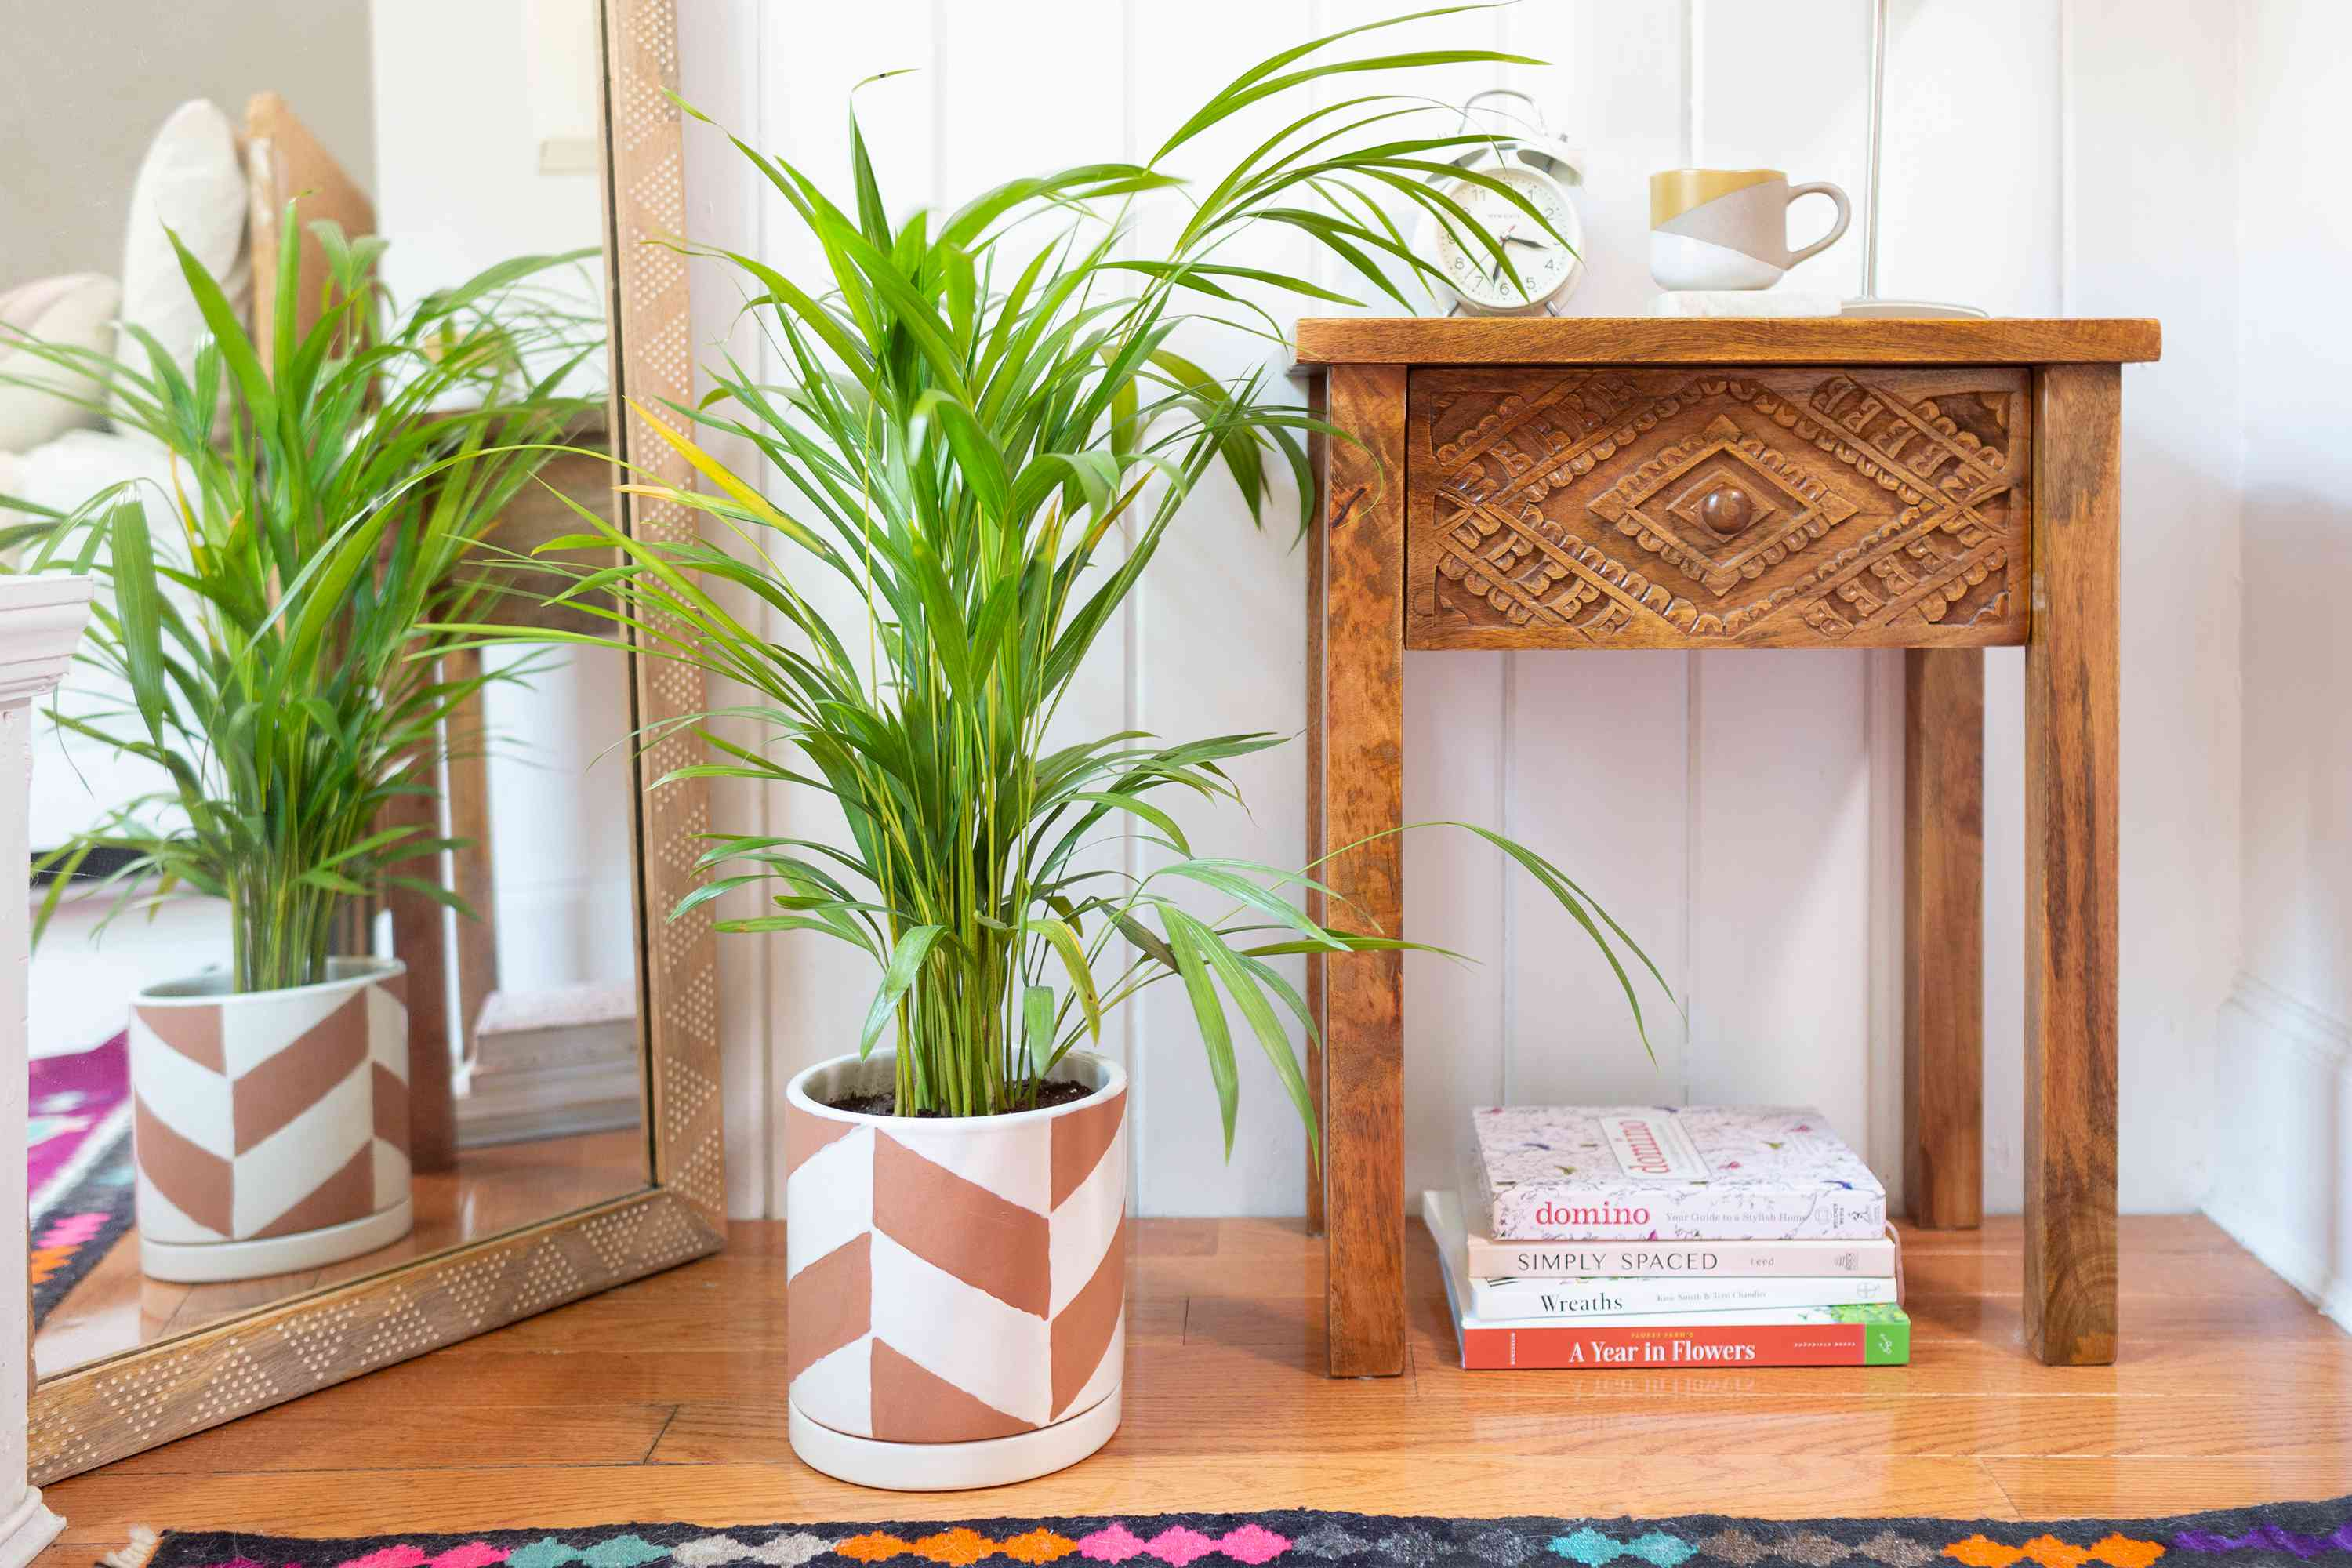 Areca palm in white and brown patterned pot next to mirror and wooden side table